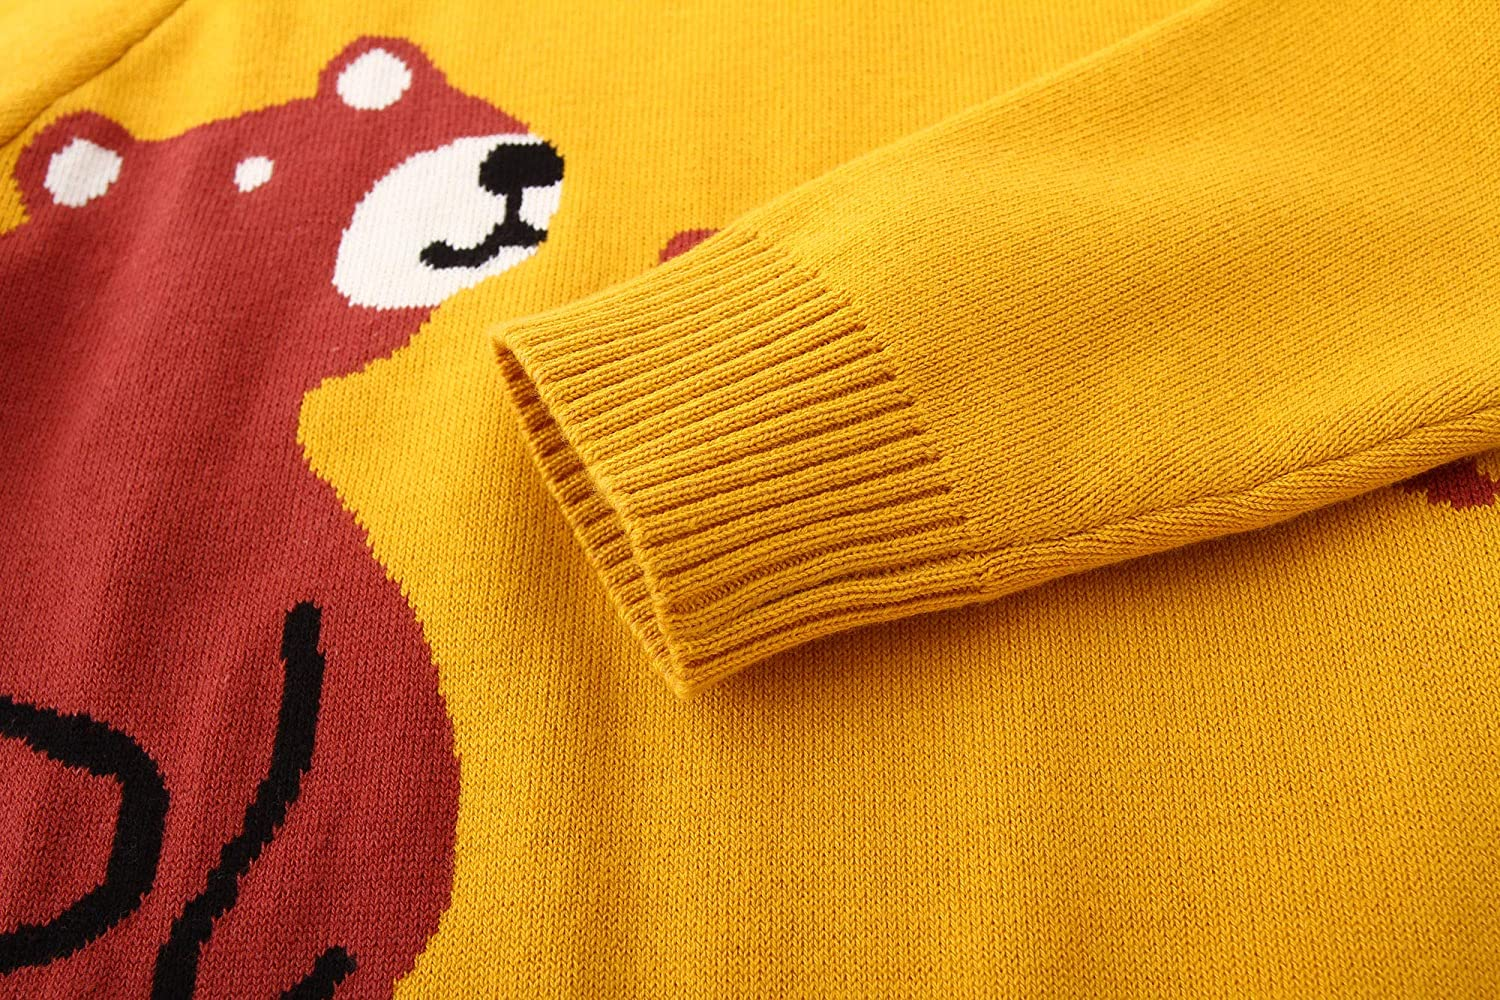 HUAER/& Baby Boys Girls Knit Sweater Unisex Cotton Cartoon Animal Pullover Sweatshirt